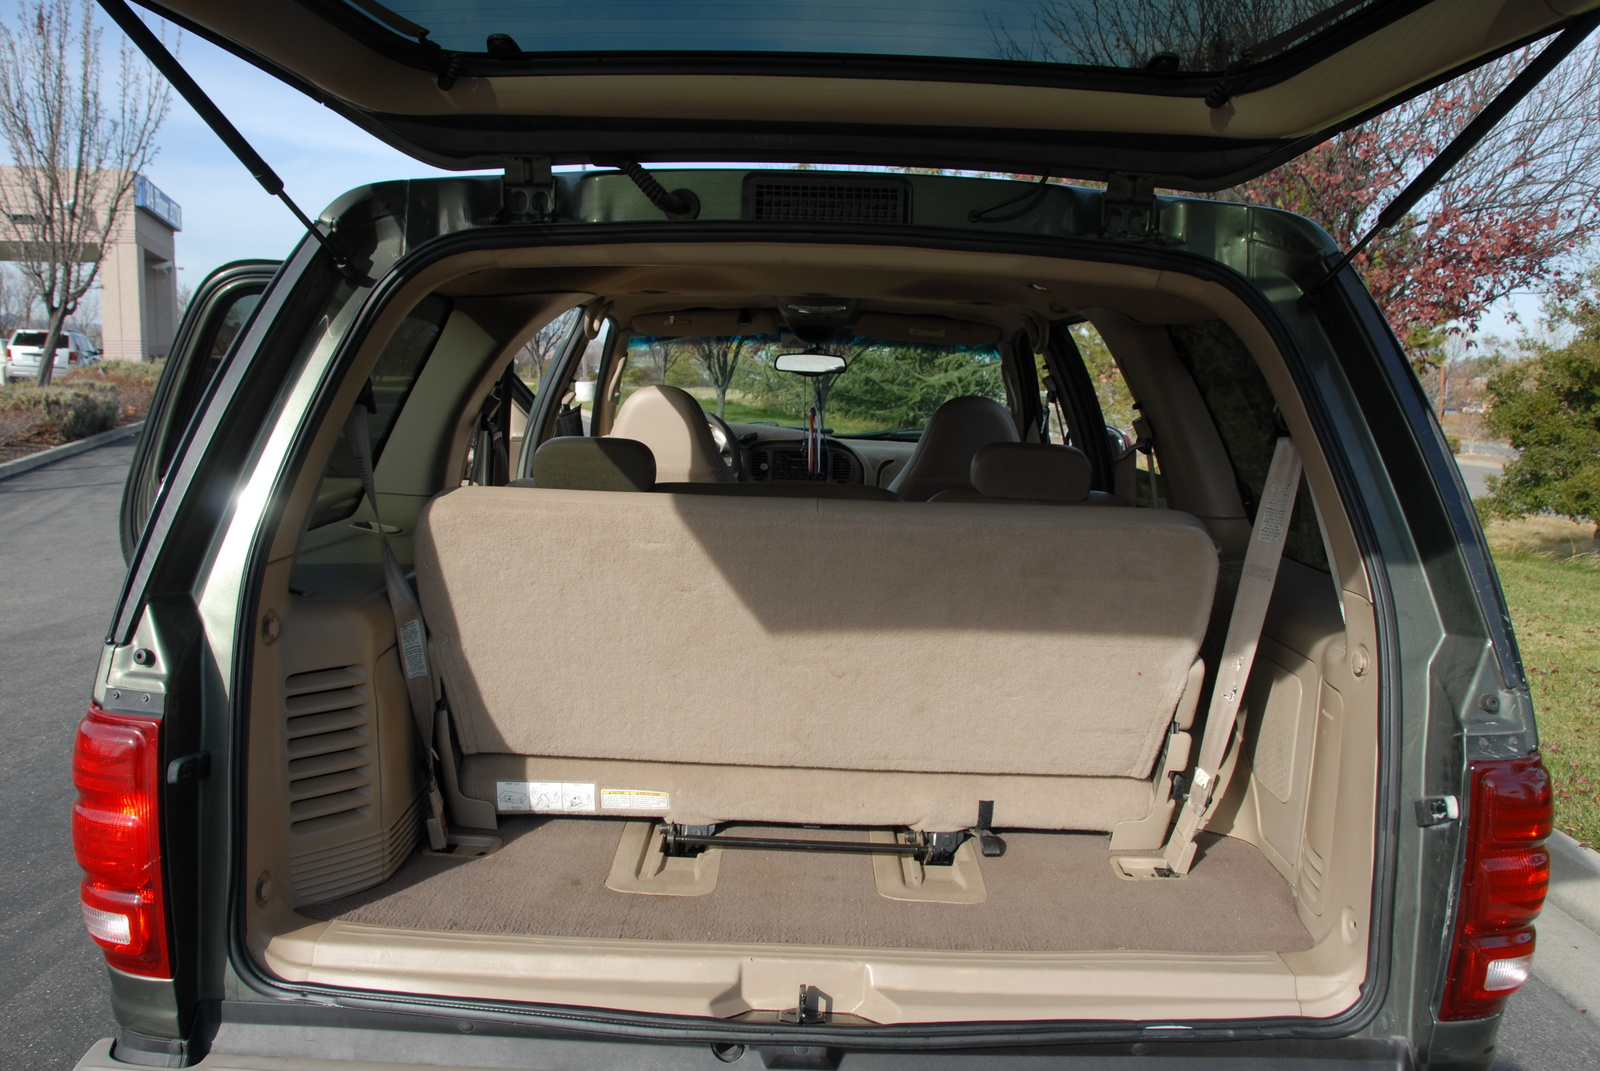 Ford Expedition interior #2